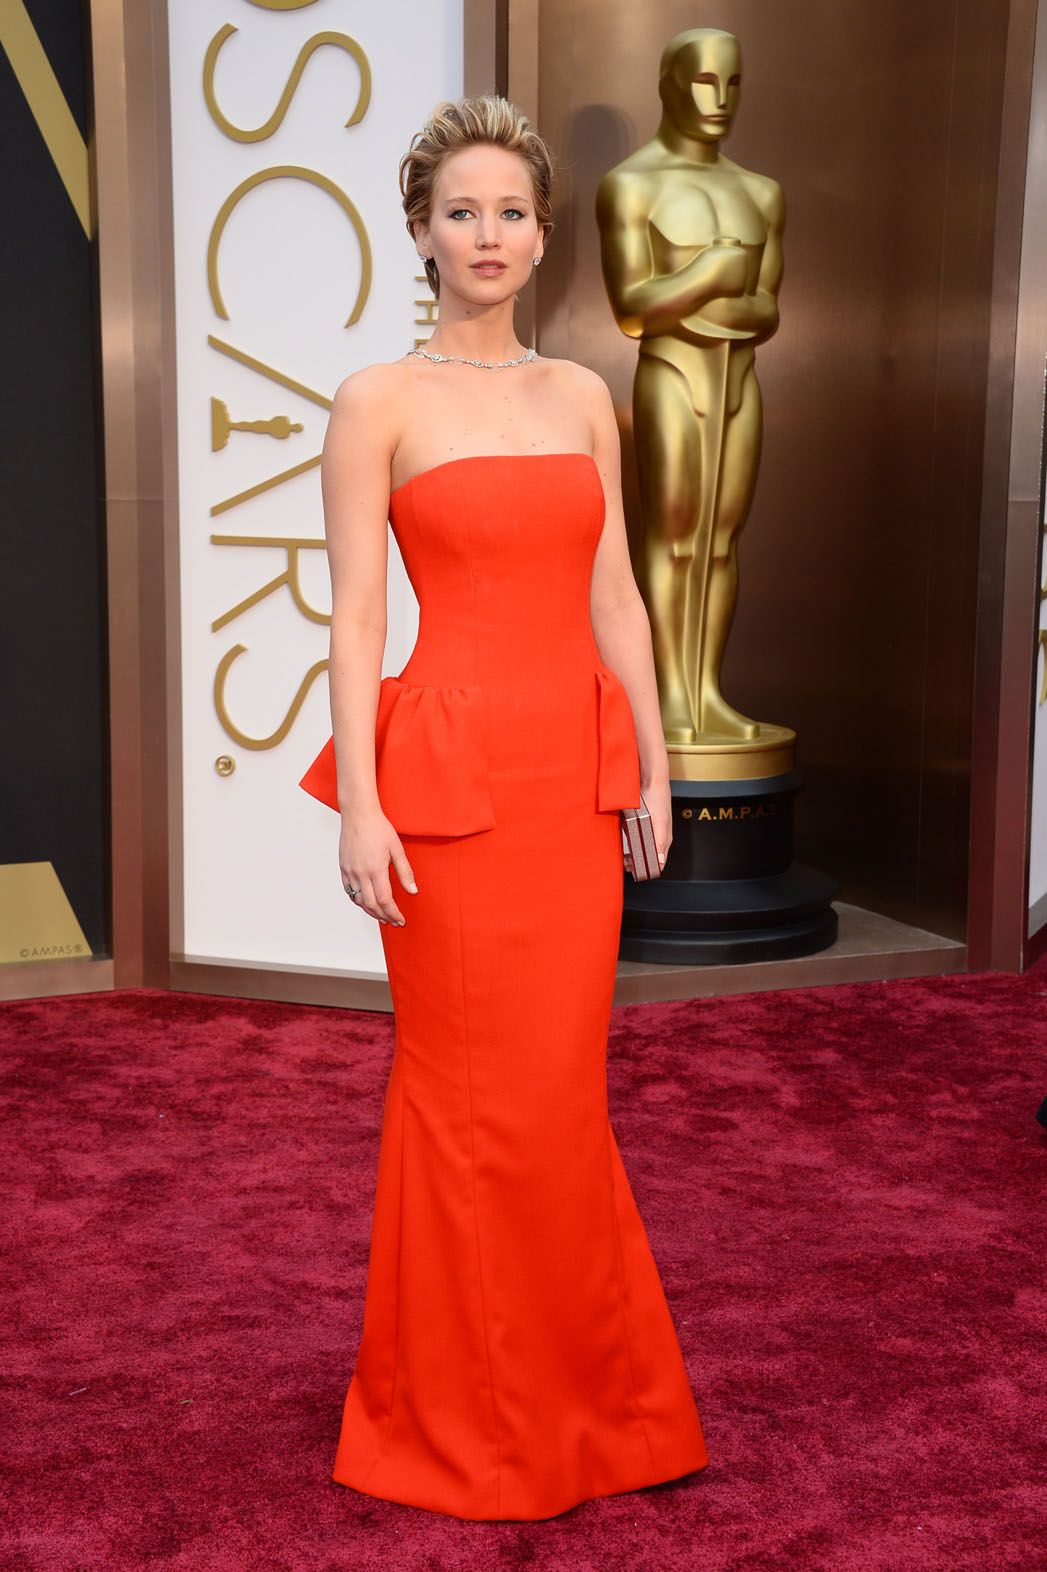 Jennifer Lawrence in Dior Couture Oscars 2014 | Nice ...